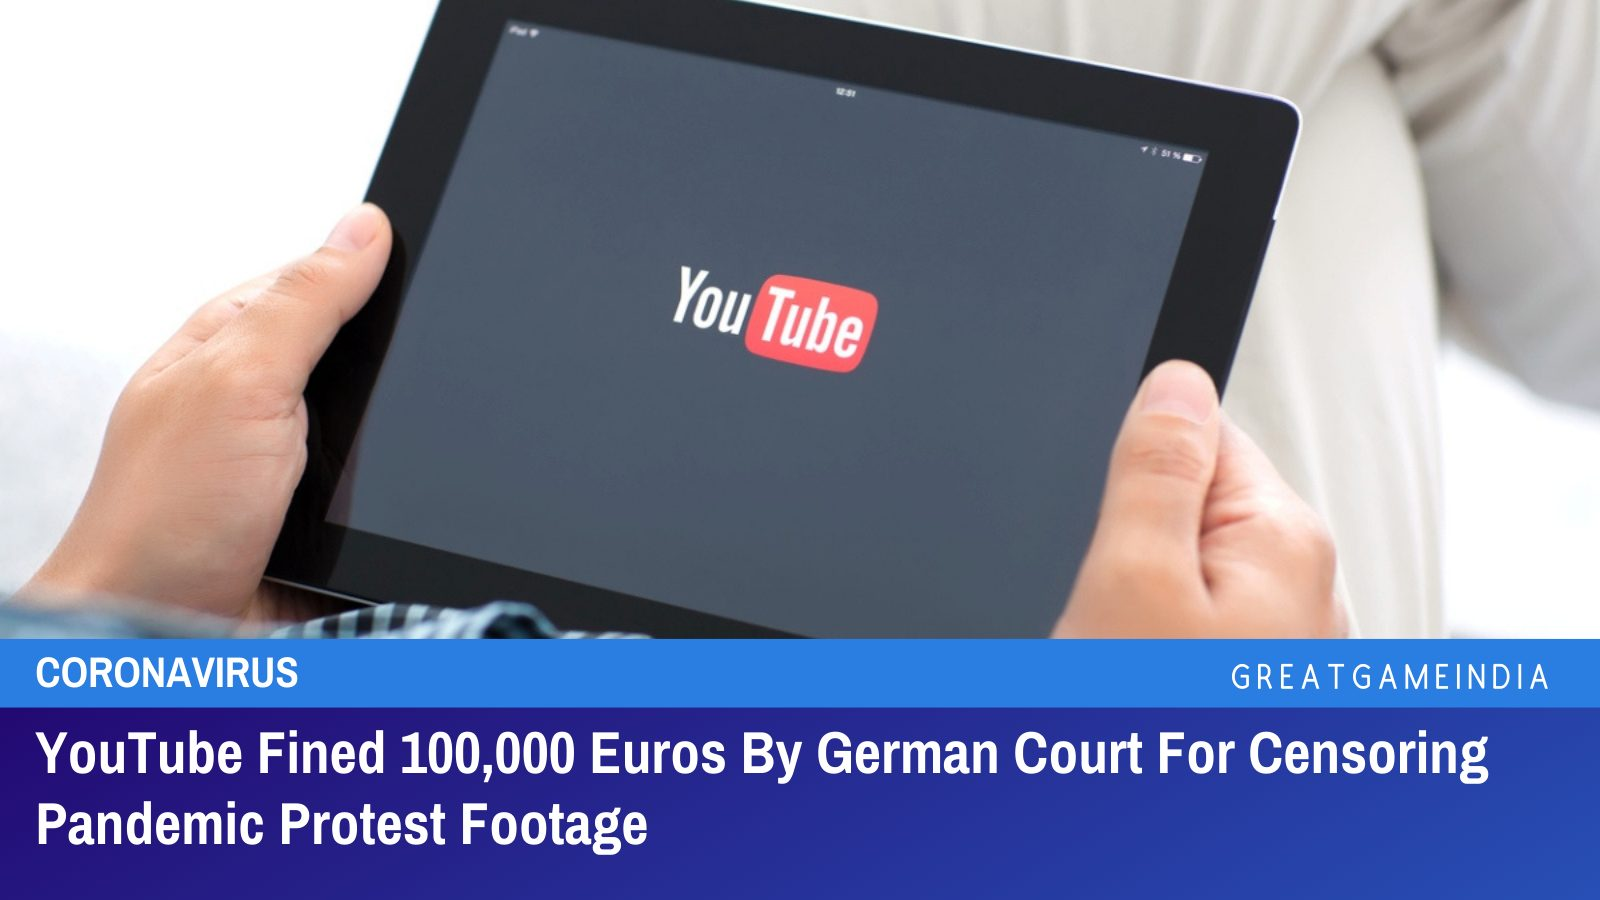 YouTube Fined 100,000 Euros By German Court For Censoring Pandemic Protest Footage